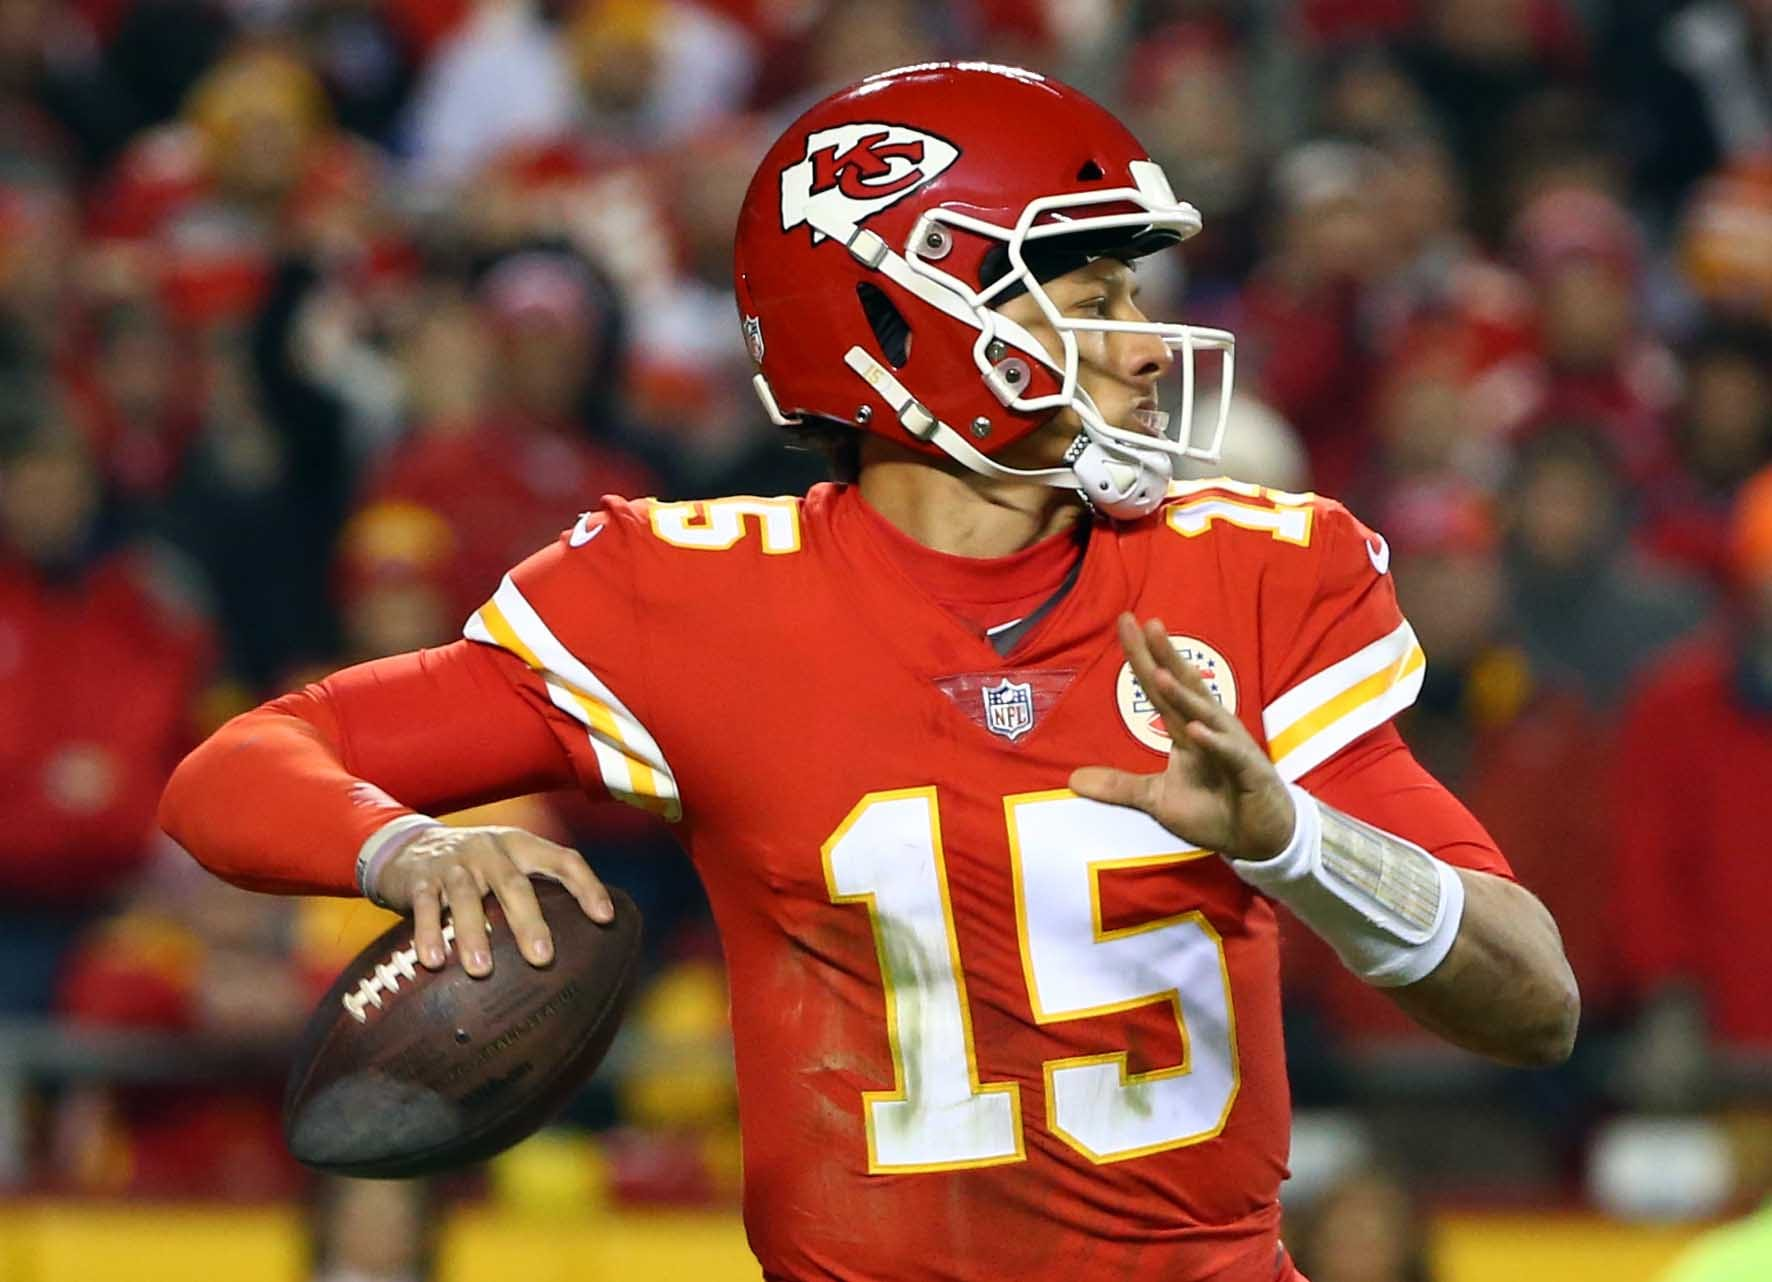 QB - Patrick Mahomes, Kansas City Chiefs